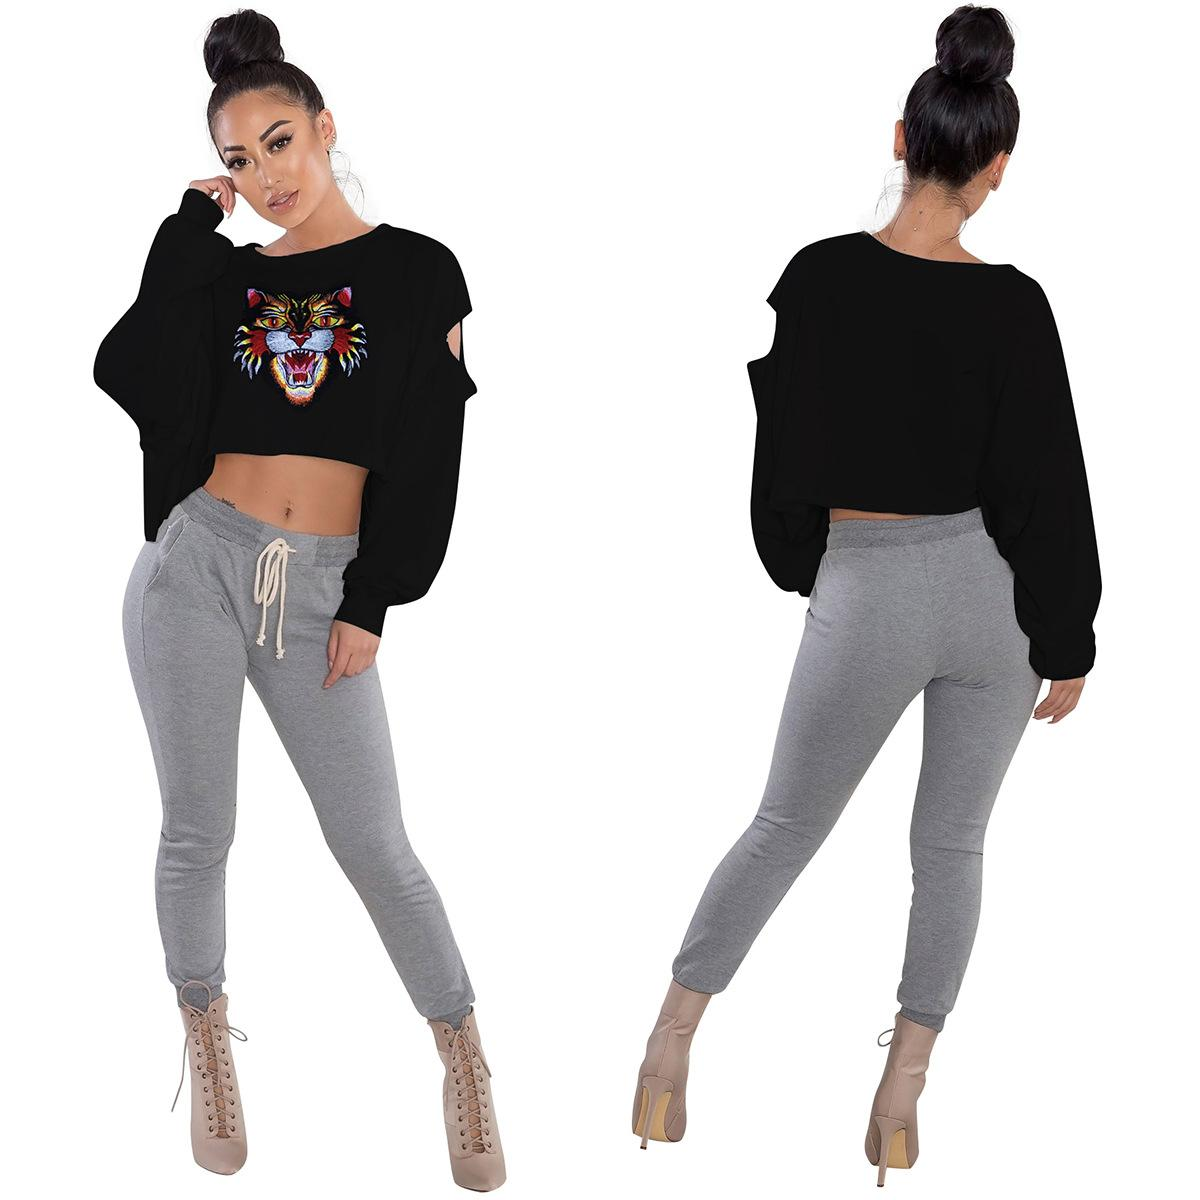 Tiger Head Crop Top T Shirts Printed Women Long Sleeve Round Neck Short Pullover Tee Shirts 7 Styles FFA168 50PCS